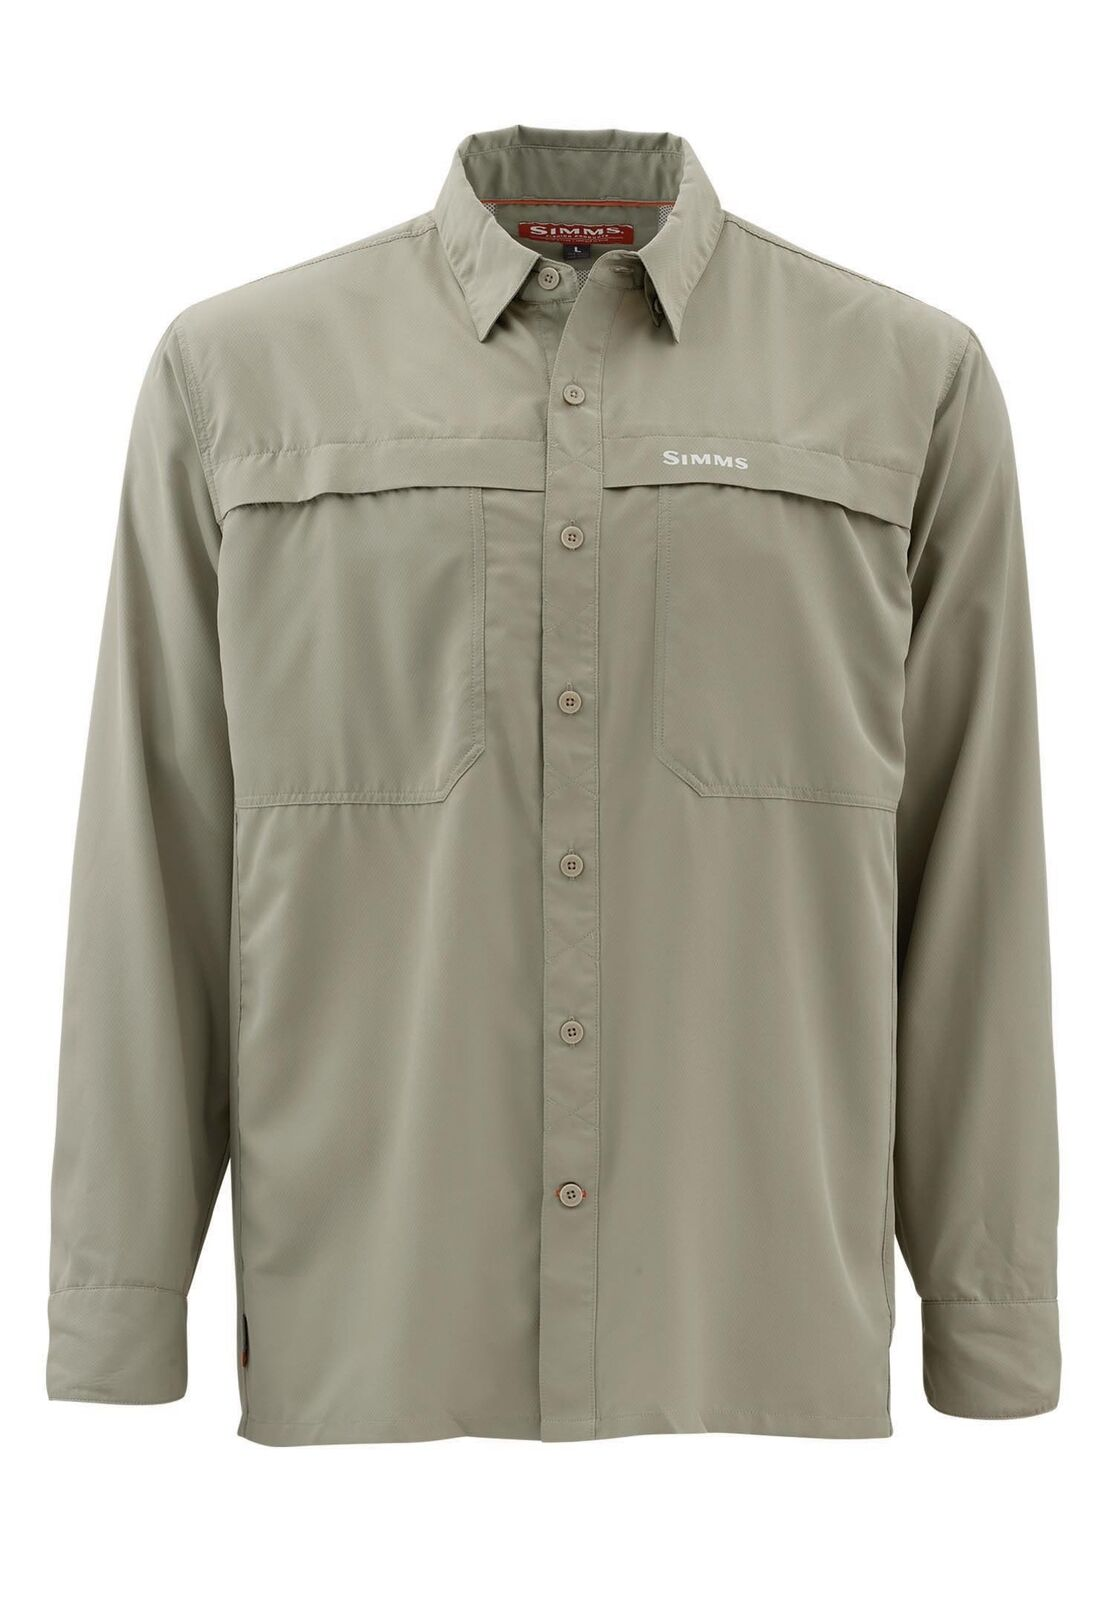 Simms Ebbtide Long Sleeve Shirt Dark Khaki - Size Small -CLOSEOUT